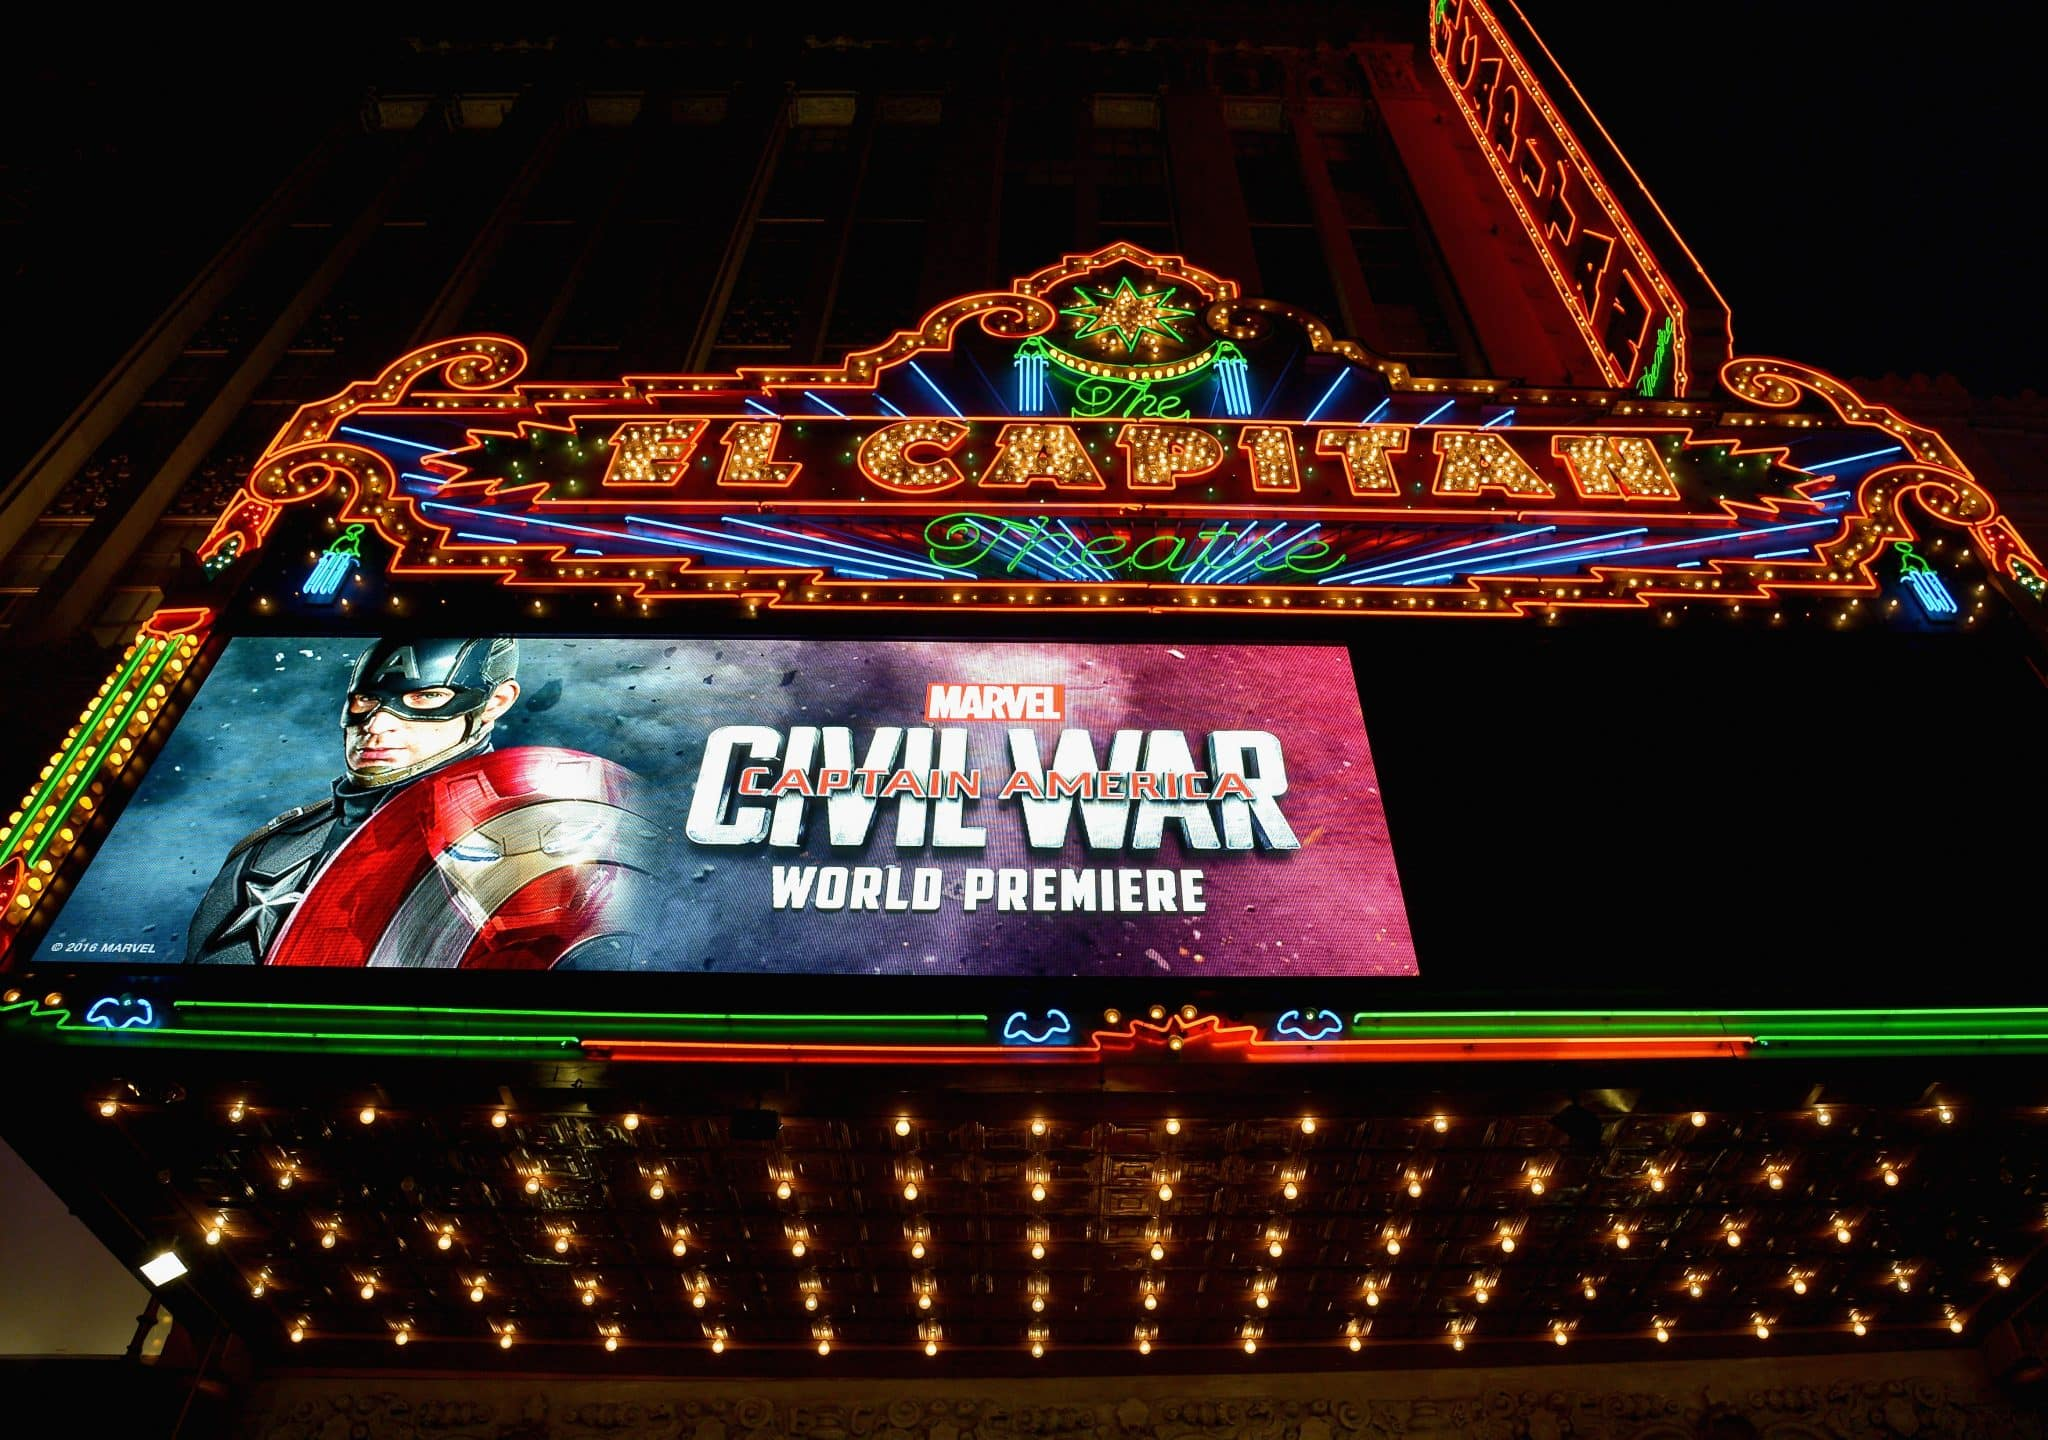 """HOLLYWOOD, CALIFORNIA - APRIL 12: A view of the atmosphere at The World Premiere of Marvel's """"Captain America: Civil War"""" at Dolby Theatre on April 12, 2016 in Los Angeles, California. (Photo by Charley Gallay/Getty Images for Disney)"""